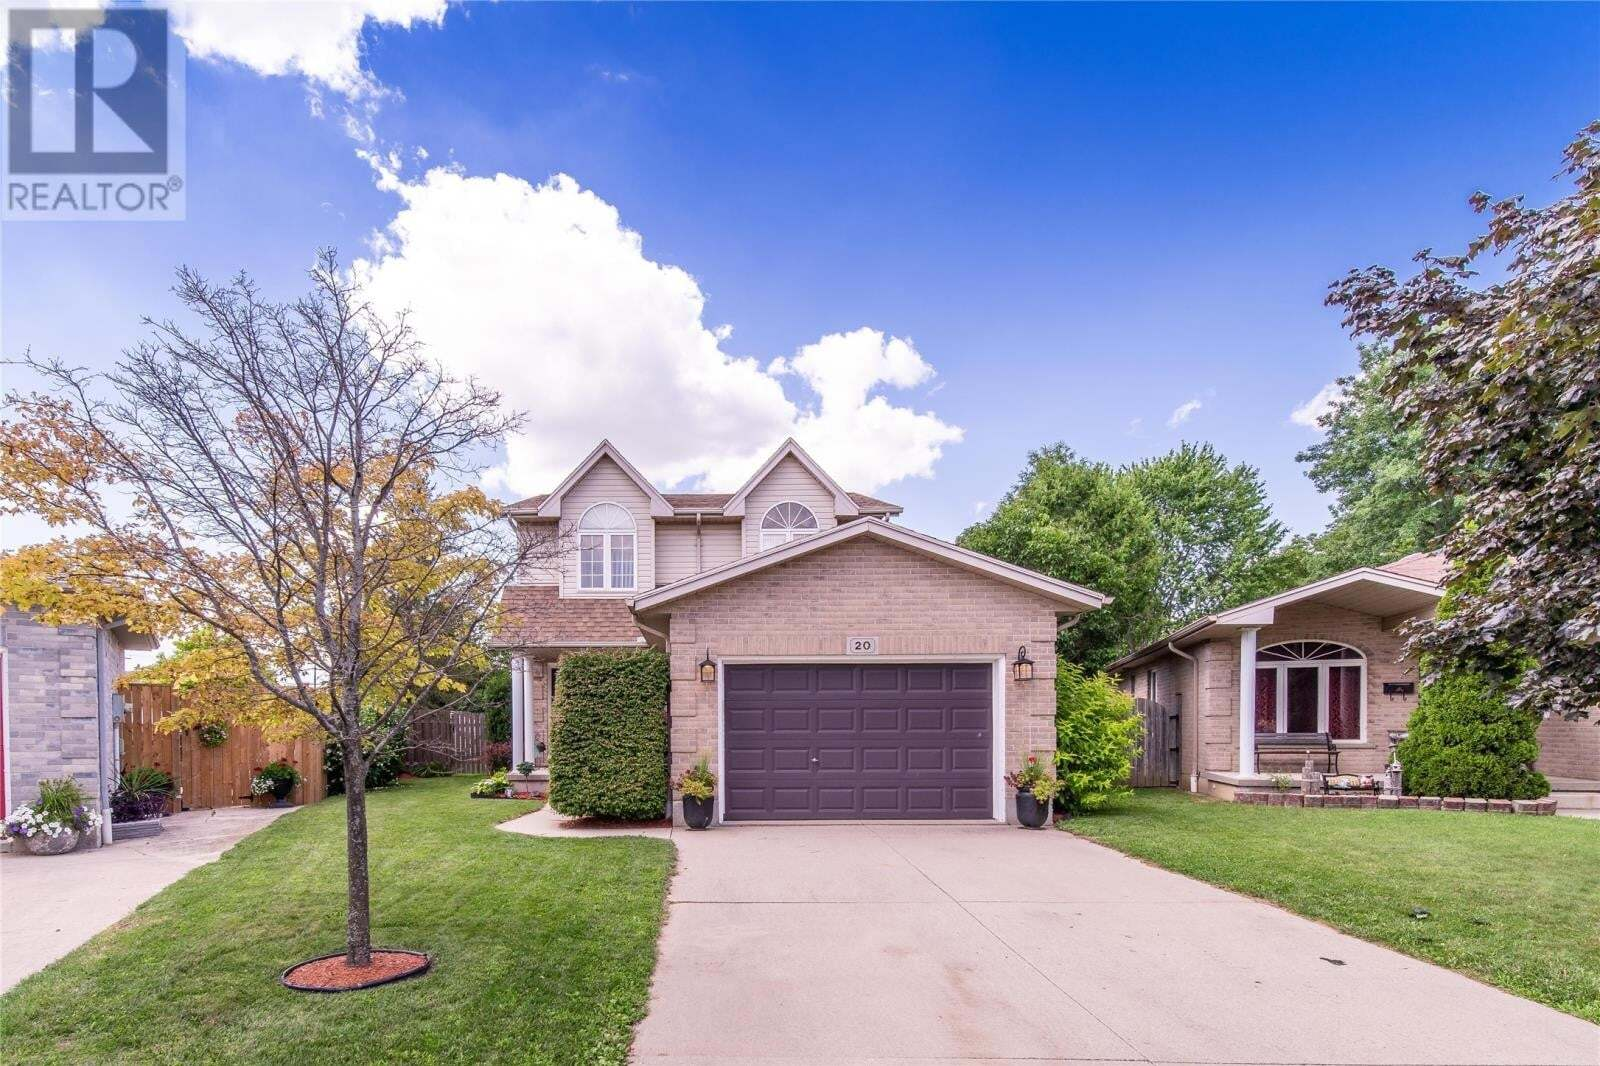 House for sale at 20 Hampton Ct Chatham Ontario - MLS: 20009933